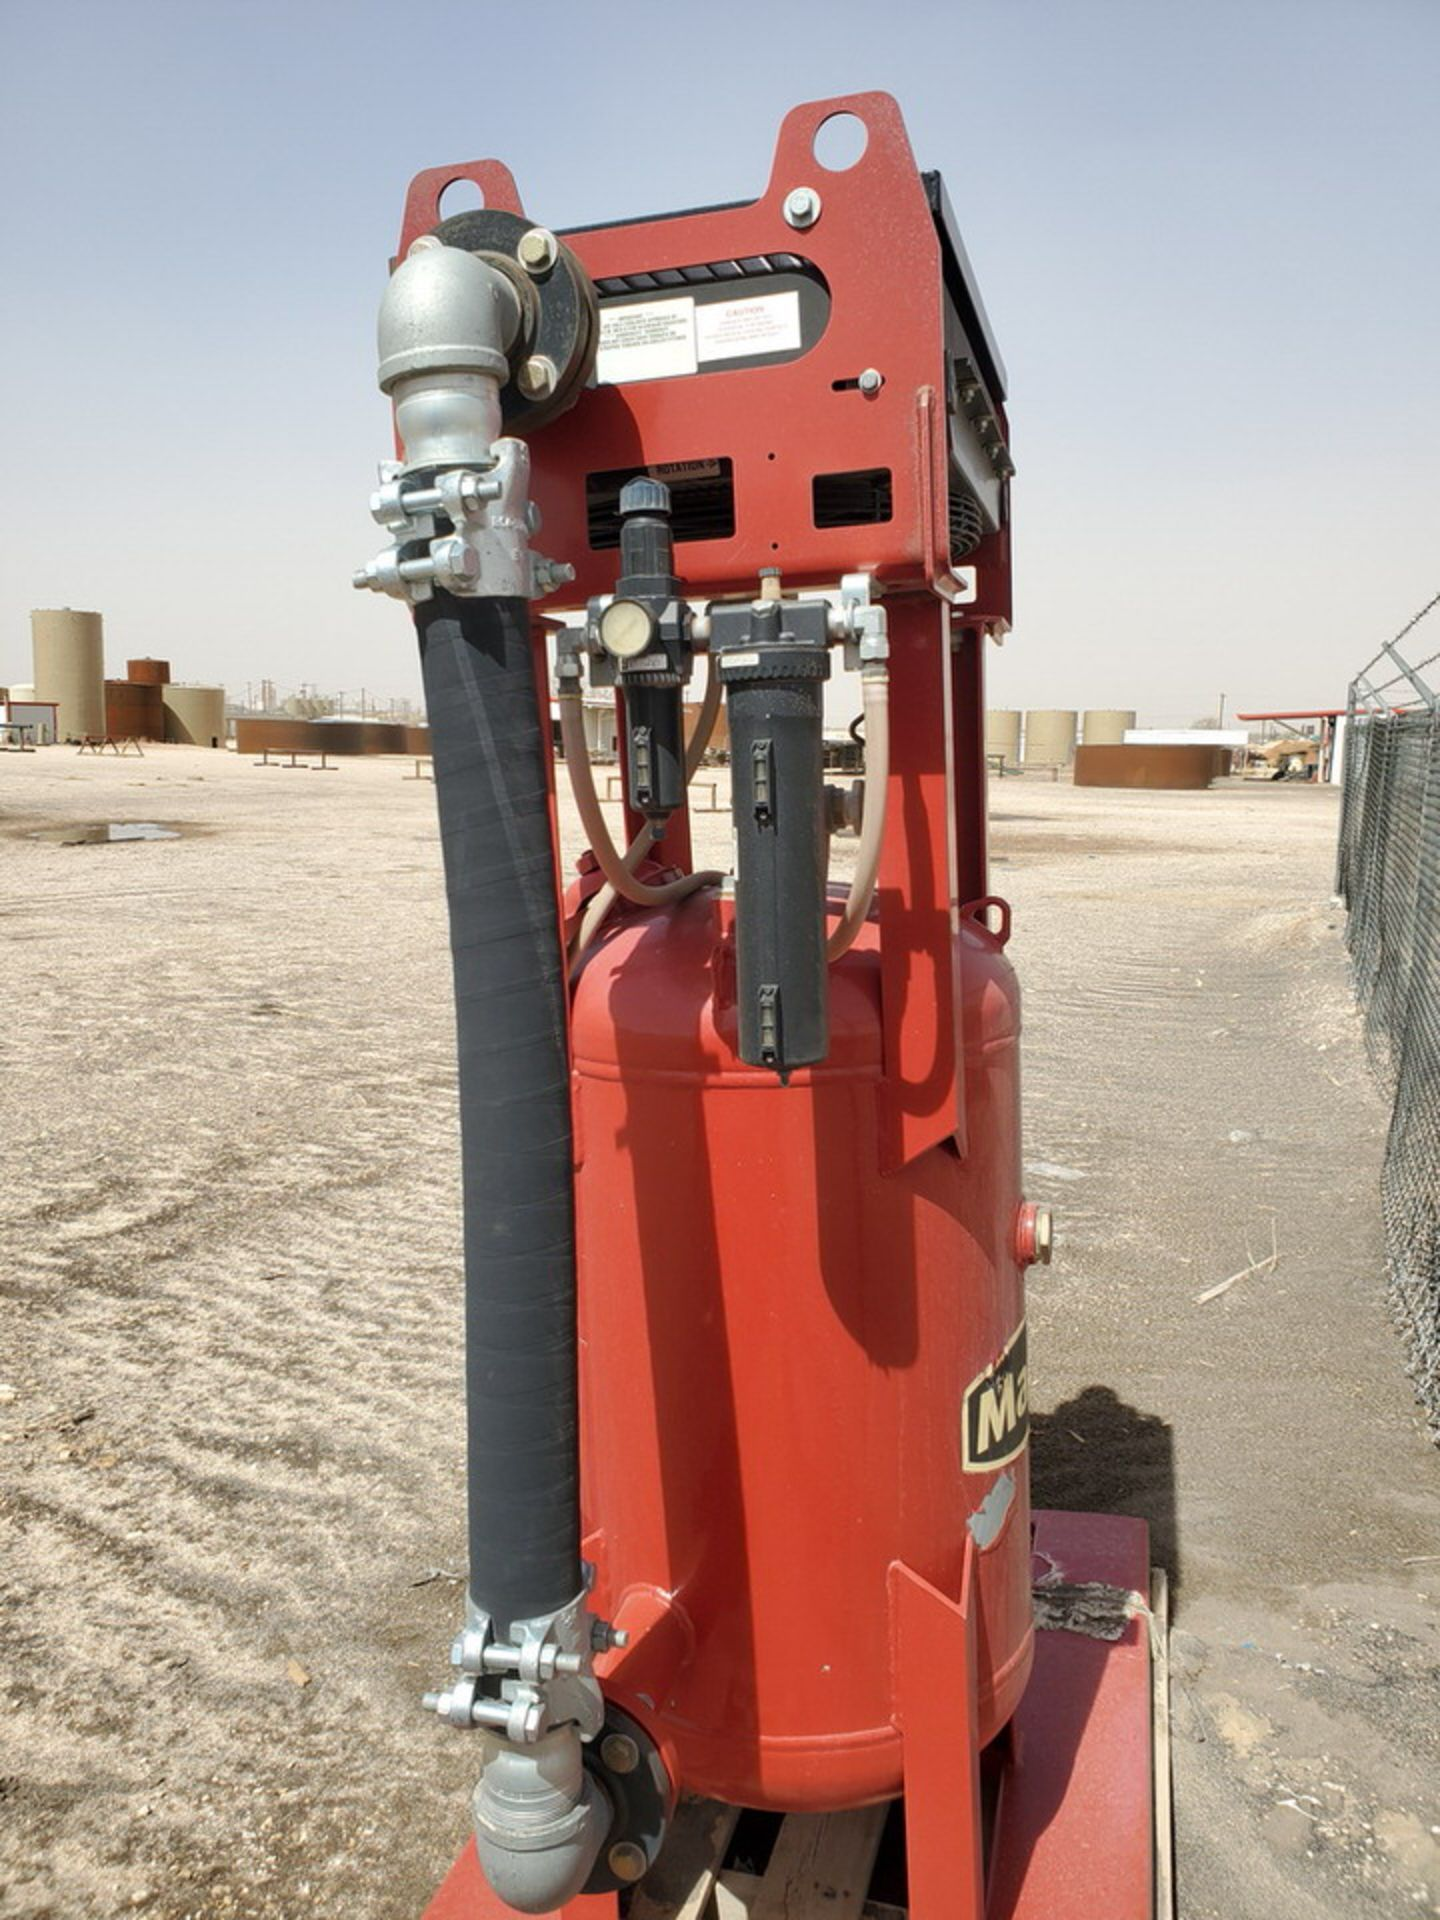 """2017 Marco Air Dryer 150psi@250F, -20@150psi, Vessel Dims: 30"""" Seam To Seam; Overall Dims: 72"""" x 35"""" - Image 5 of 11"""